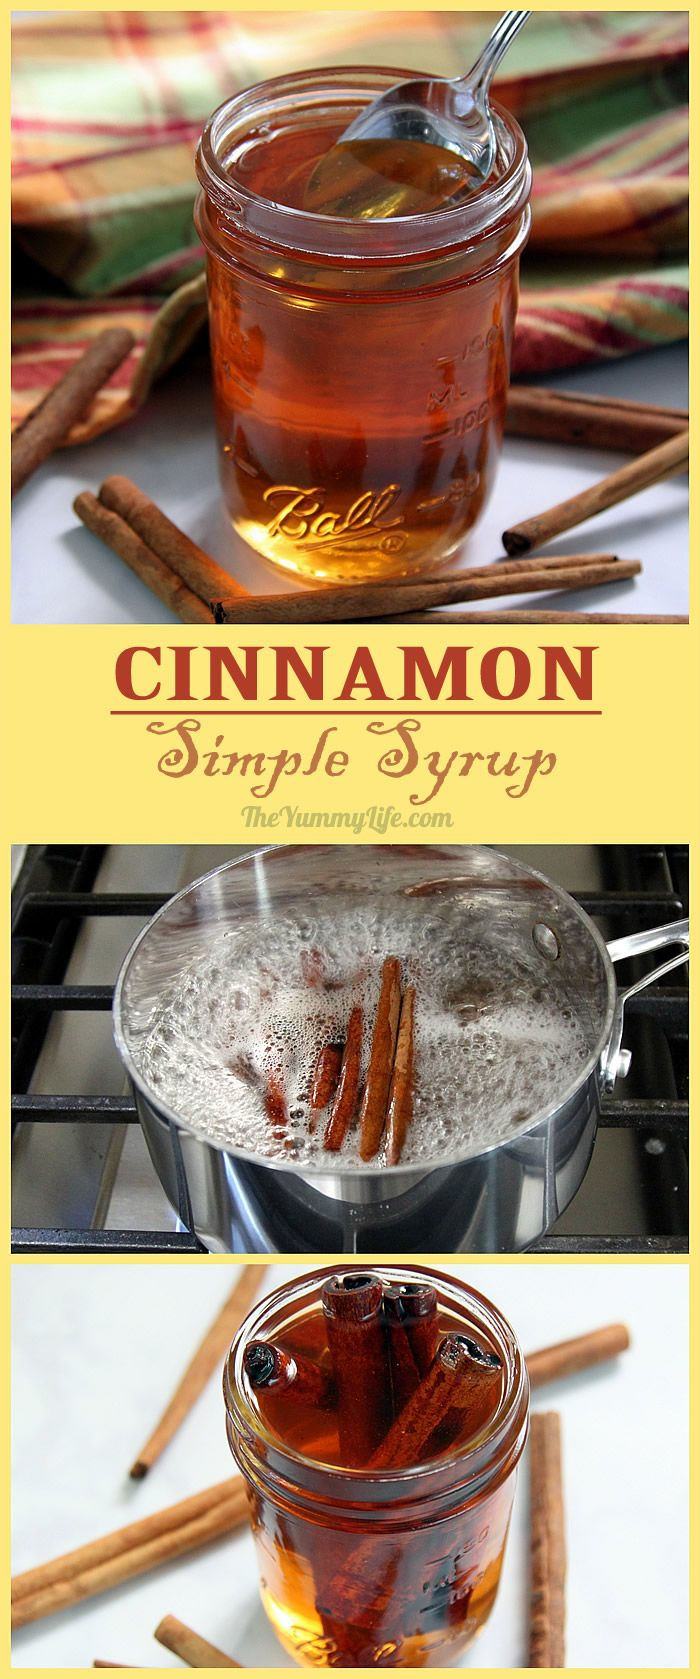 DIY Cinnamon Simple Syrup is so easy to make at home. Add this popular sweet flavor to hot and cold drinks--coffee, tea, cider, juice, sangria, cocktails. Stir it into yogurt, oatmeal, smoothies, and milk shakes. Drizzle it on waffles, pancakes or ice cream. From The Yummy Life.